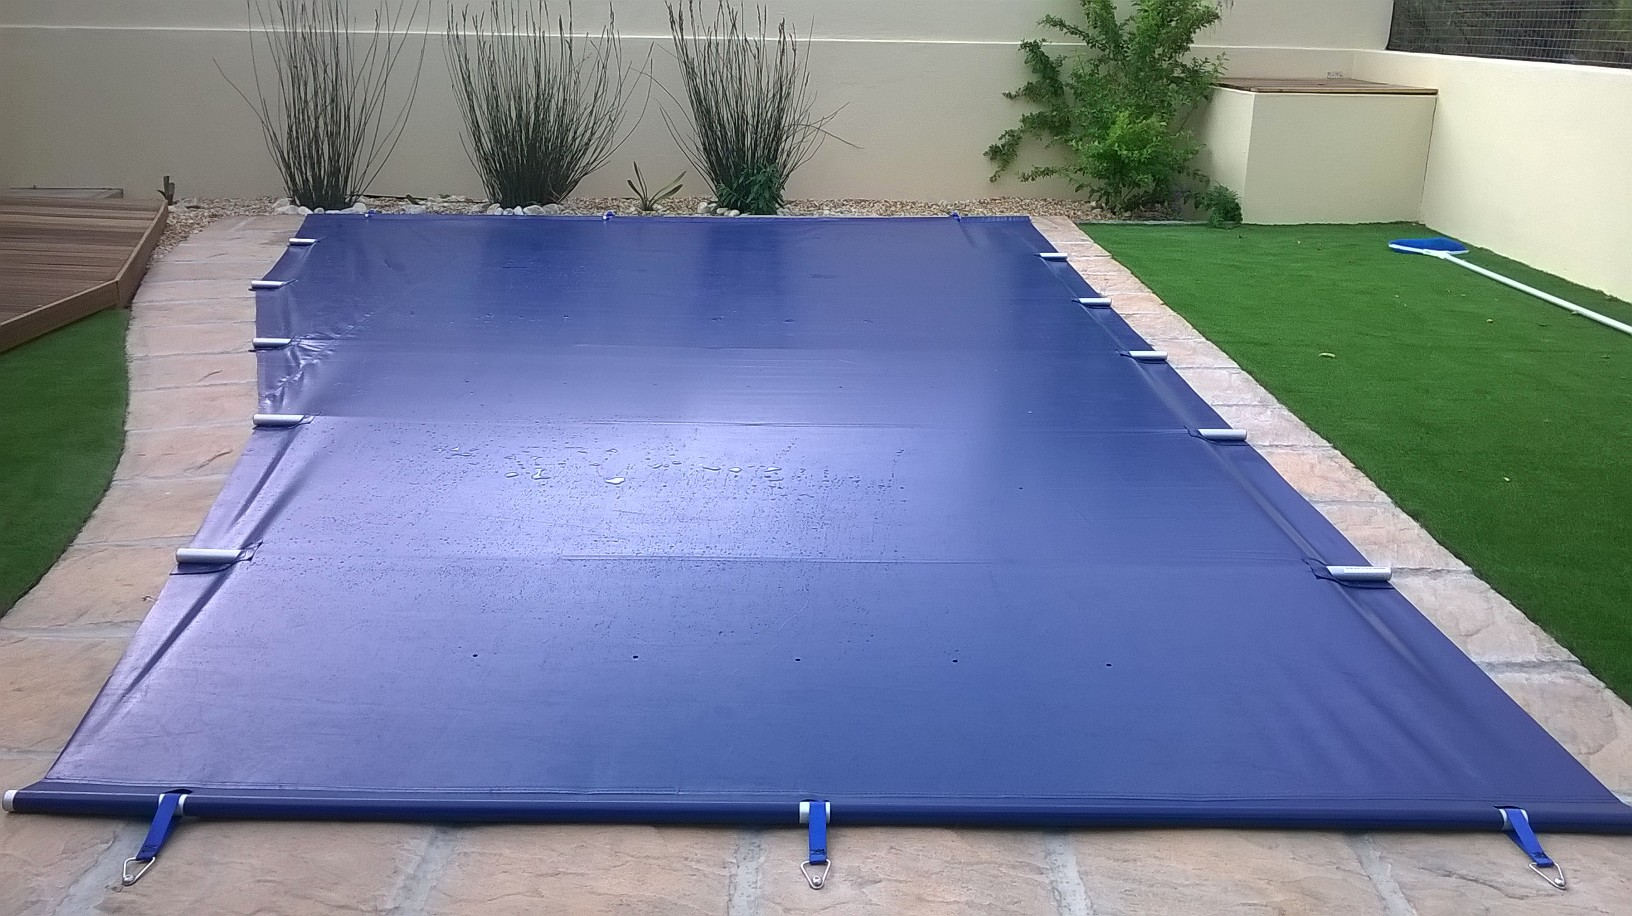 Gallery Powerplastics Pool Covers Powerplastics Pool